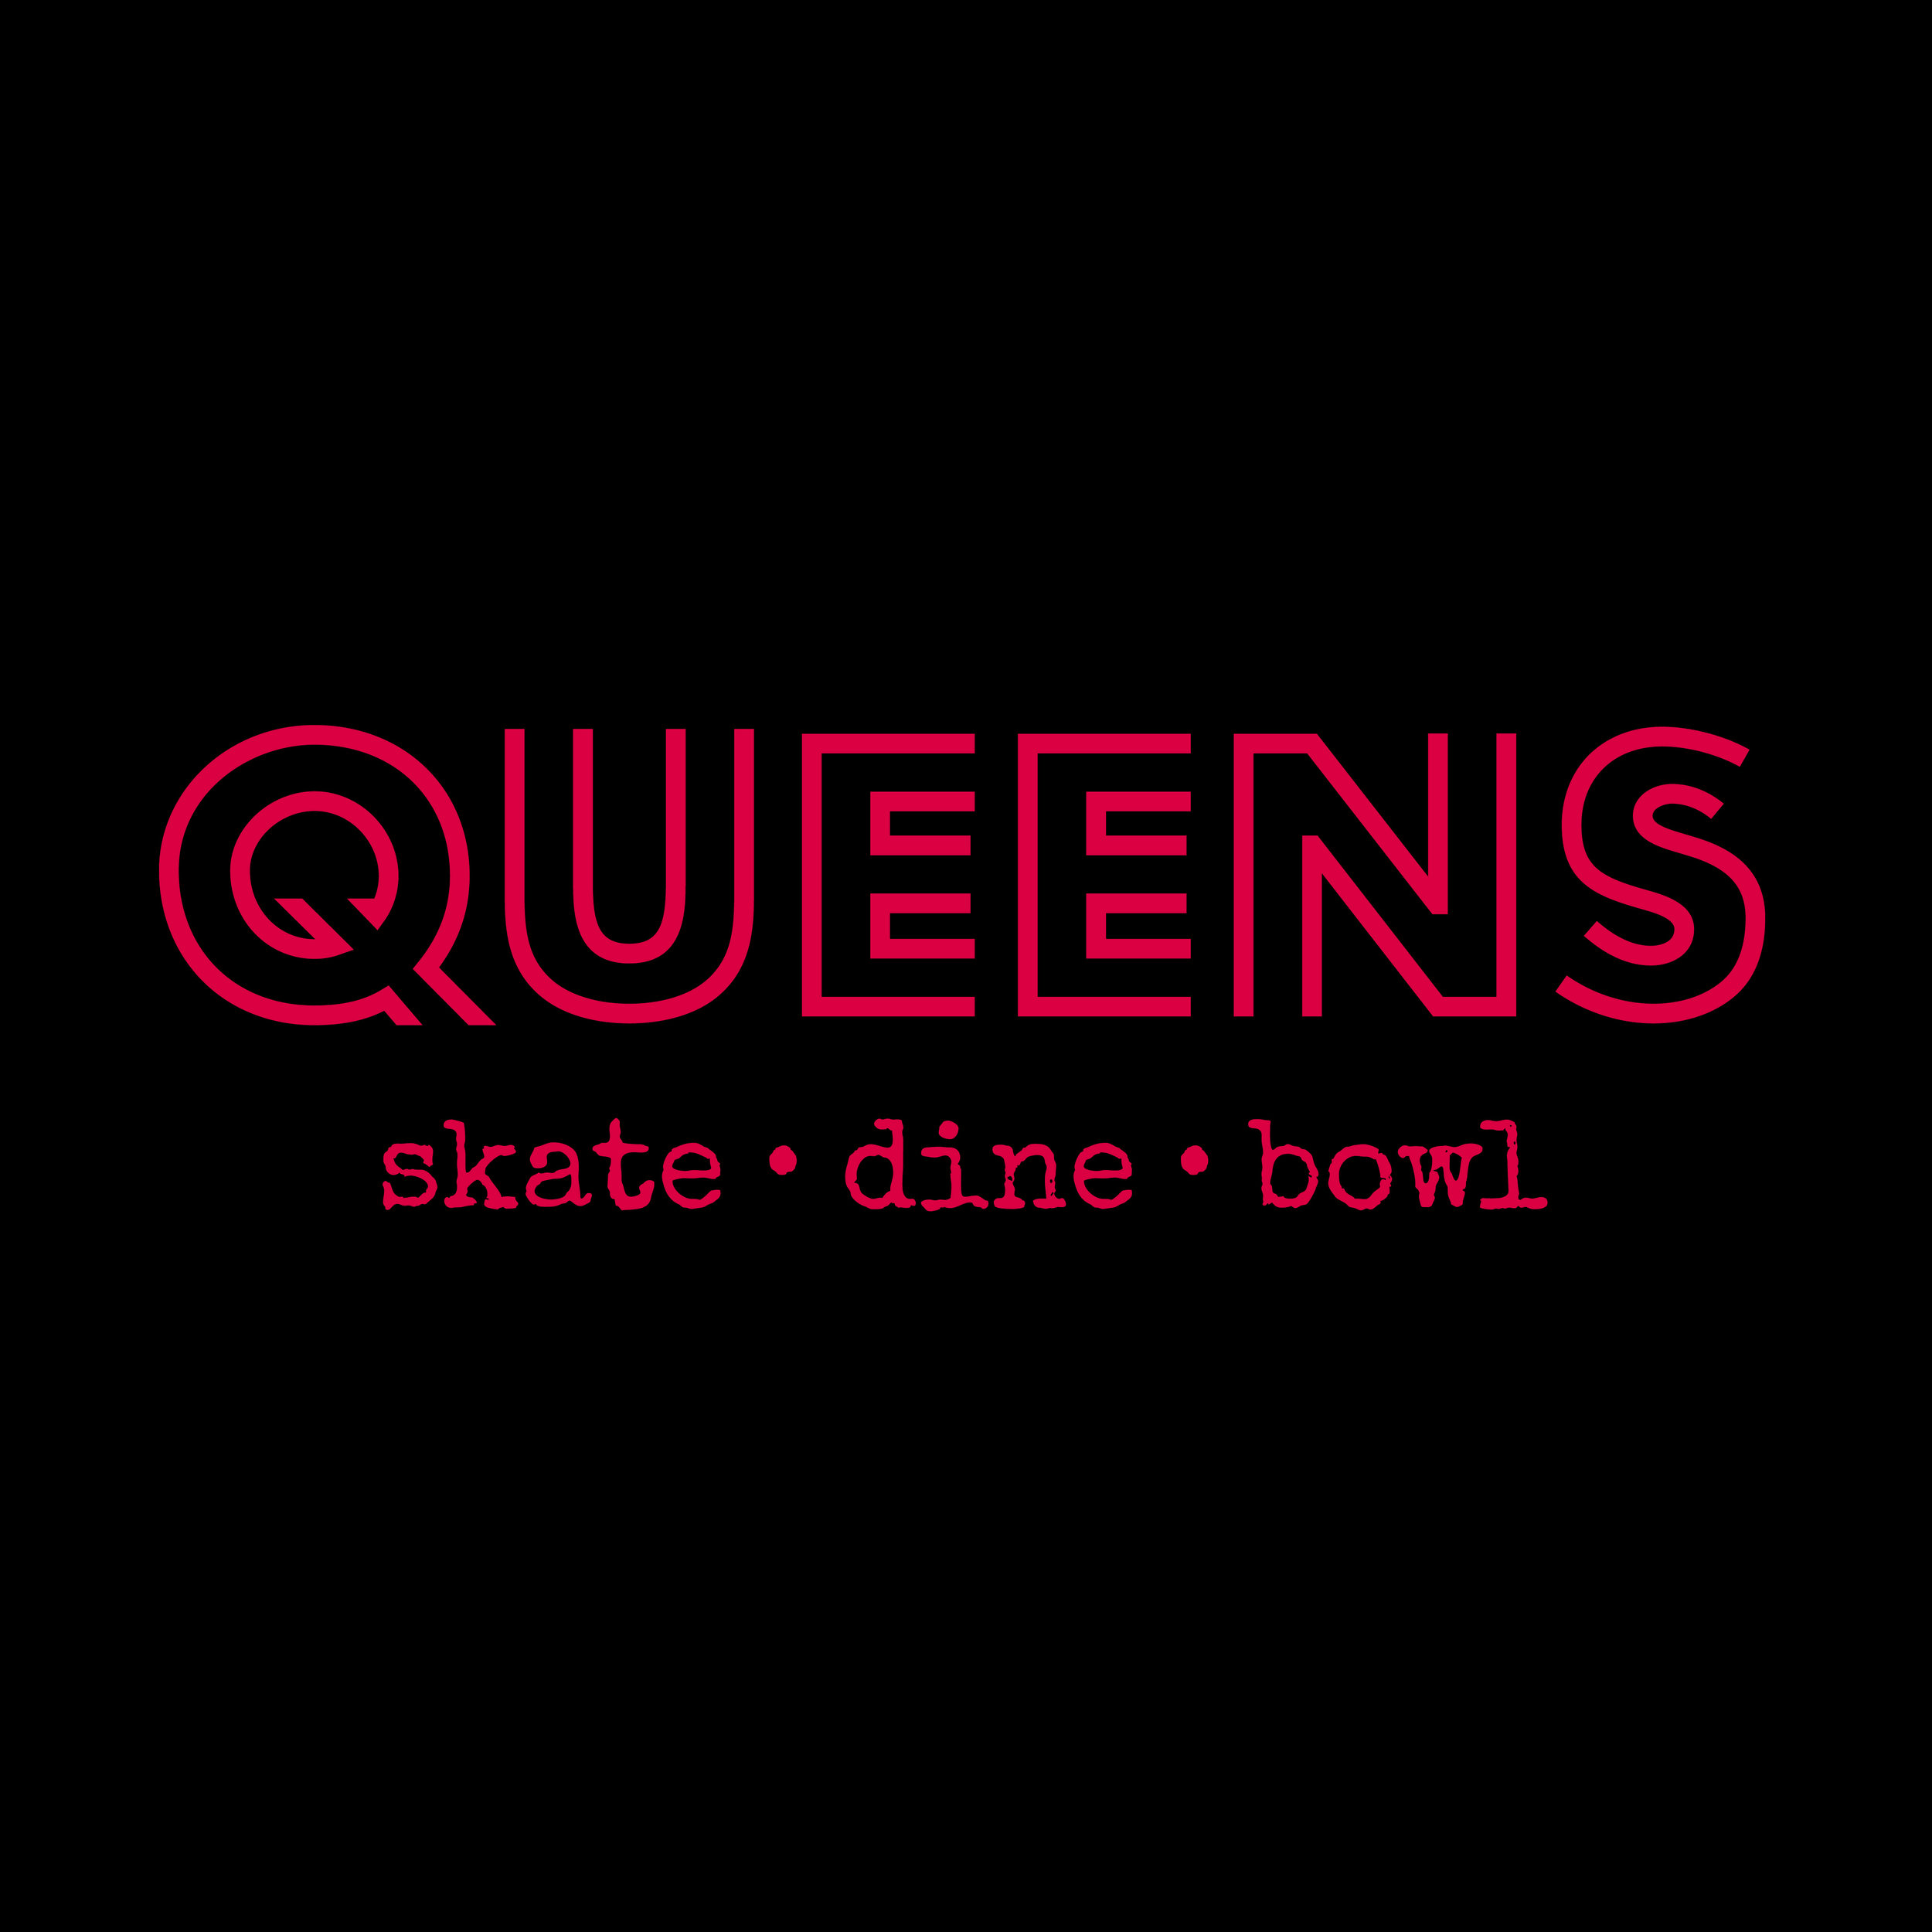 Queens_Logo_Black_SE_OL_square copy.jpg